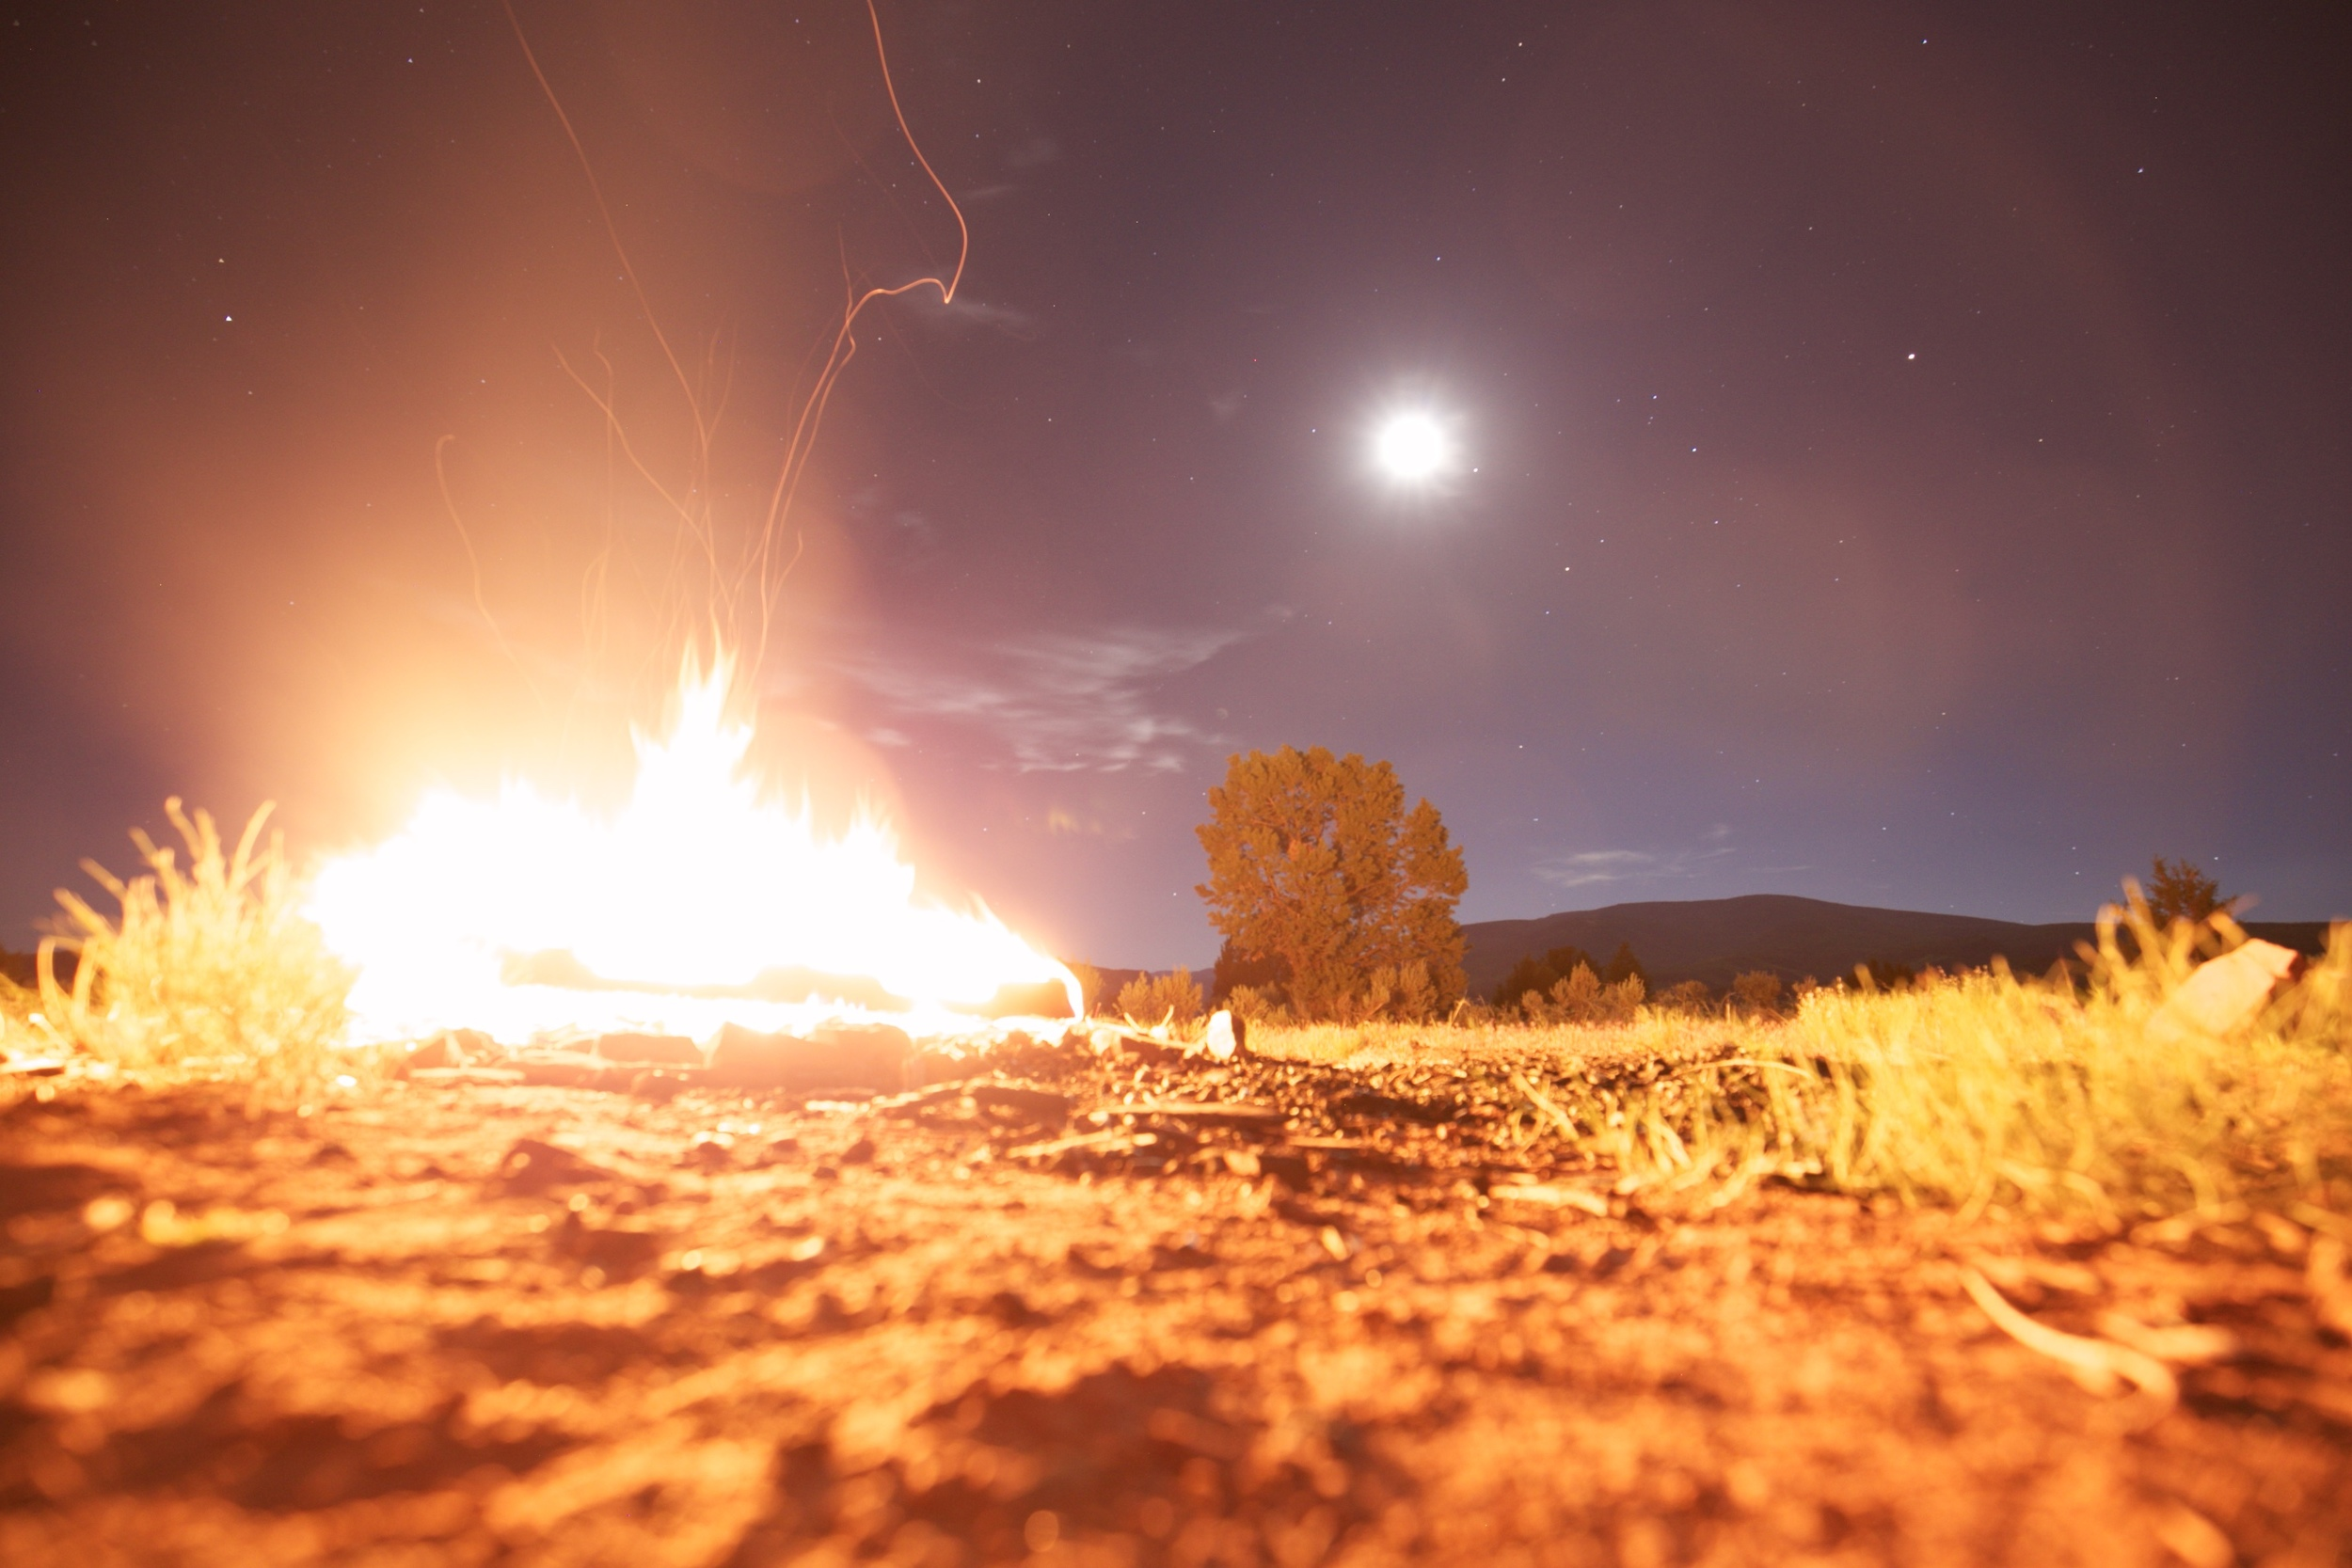 Midsummer midnight bonfire with the stars and a full moon.